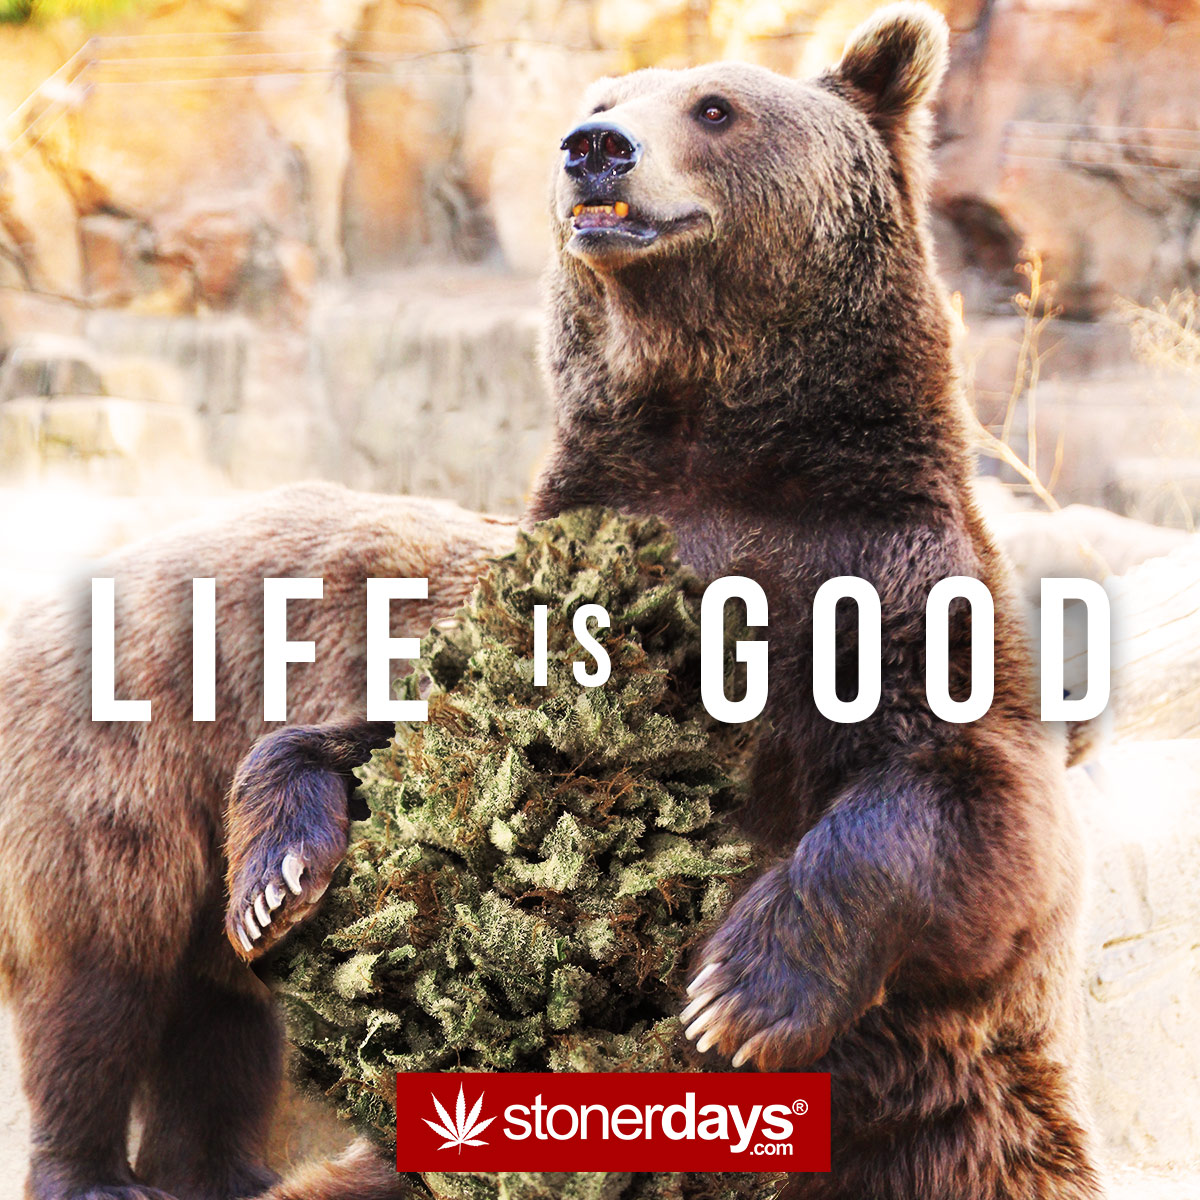 Iphone 6 Holiday Wallpaper Mobile Wallpaper For Stoners Stoner Pictures Stoner Blog